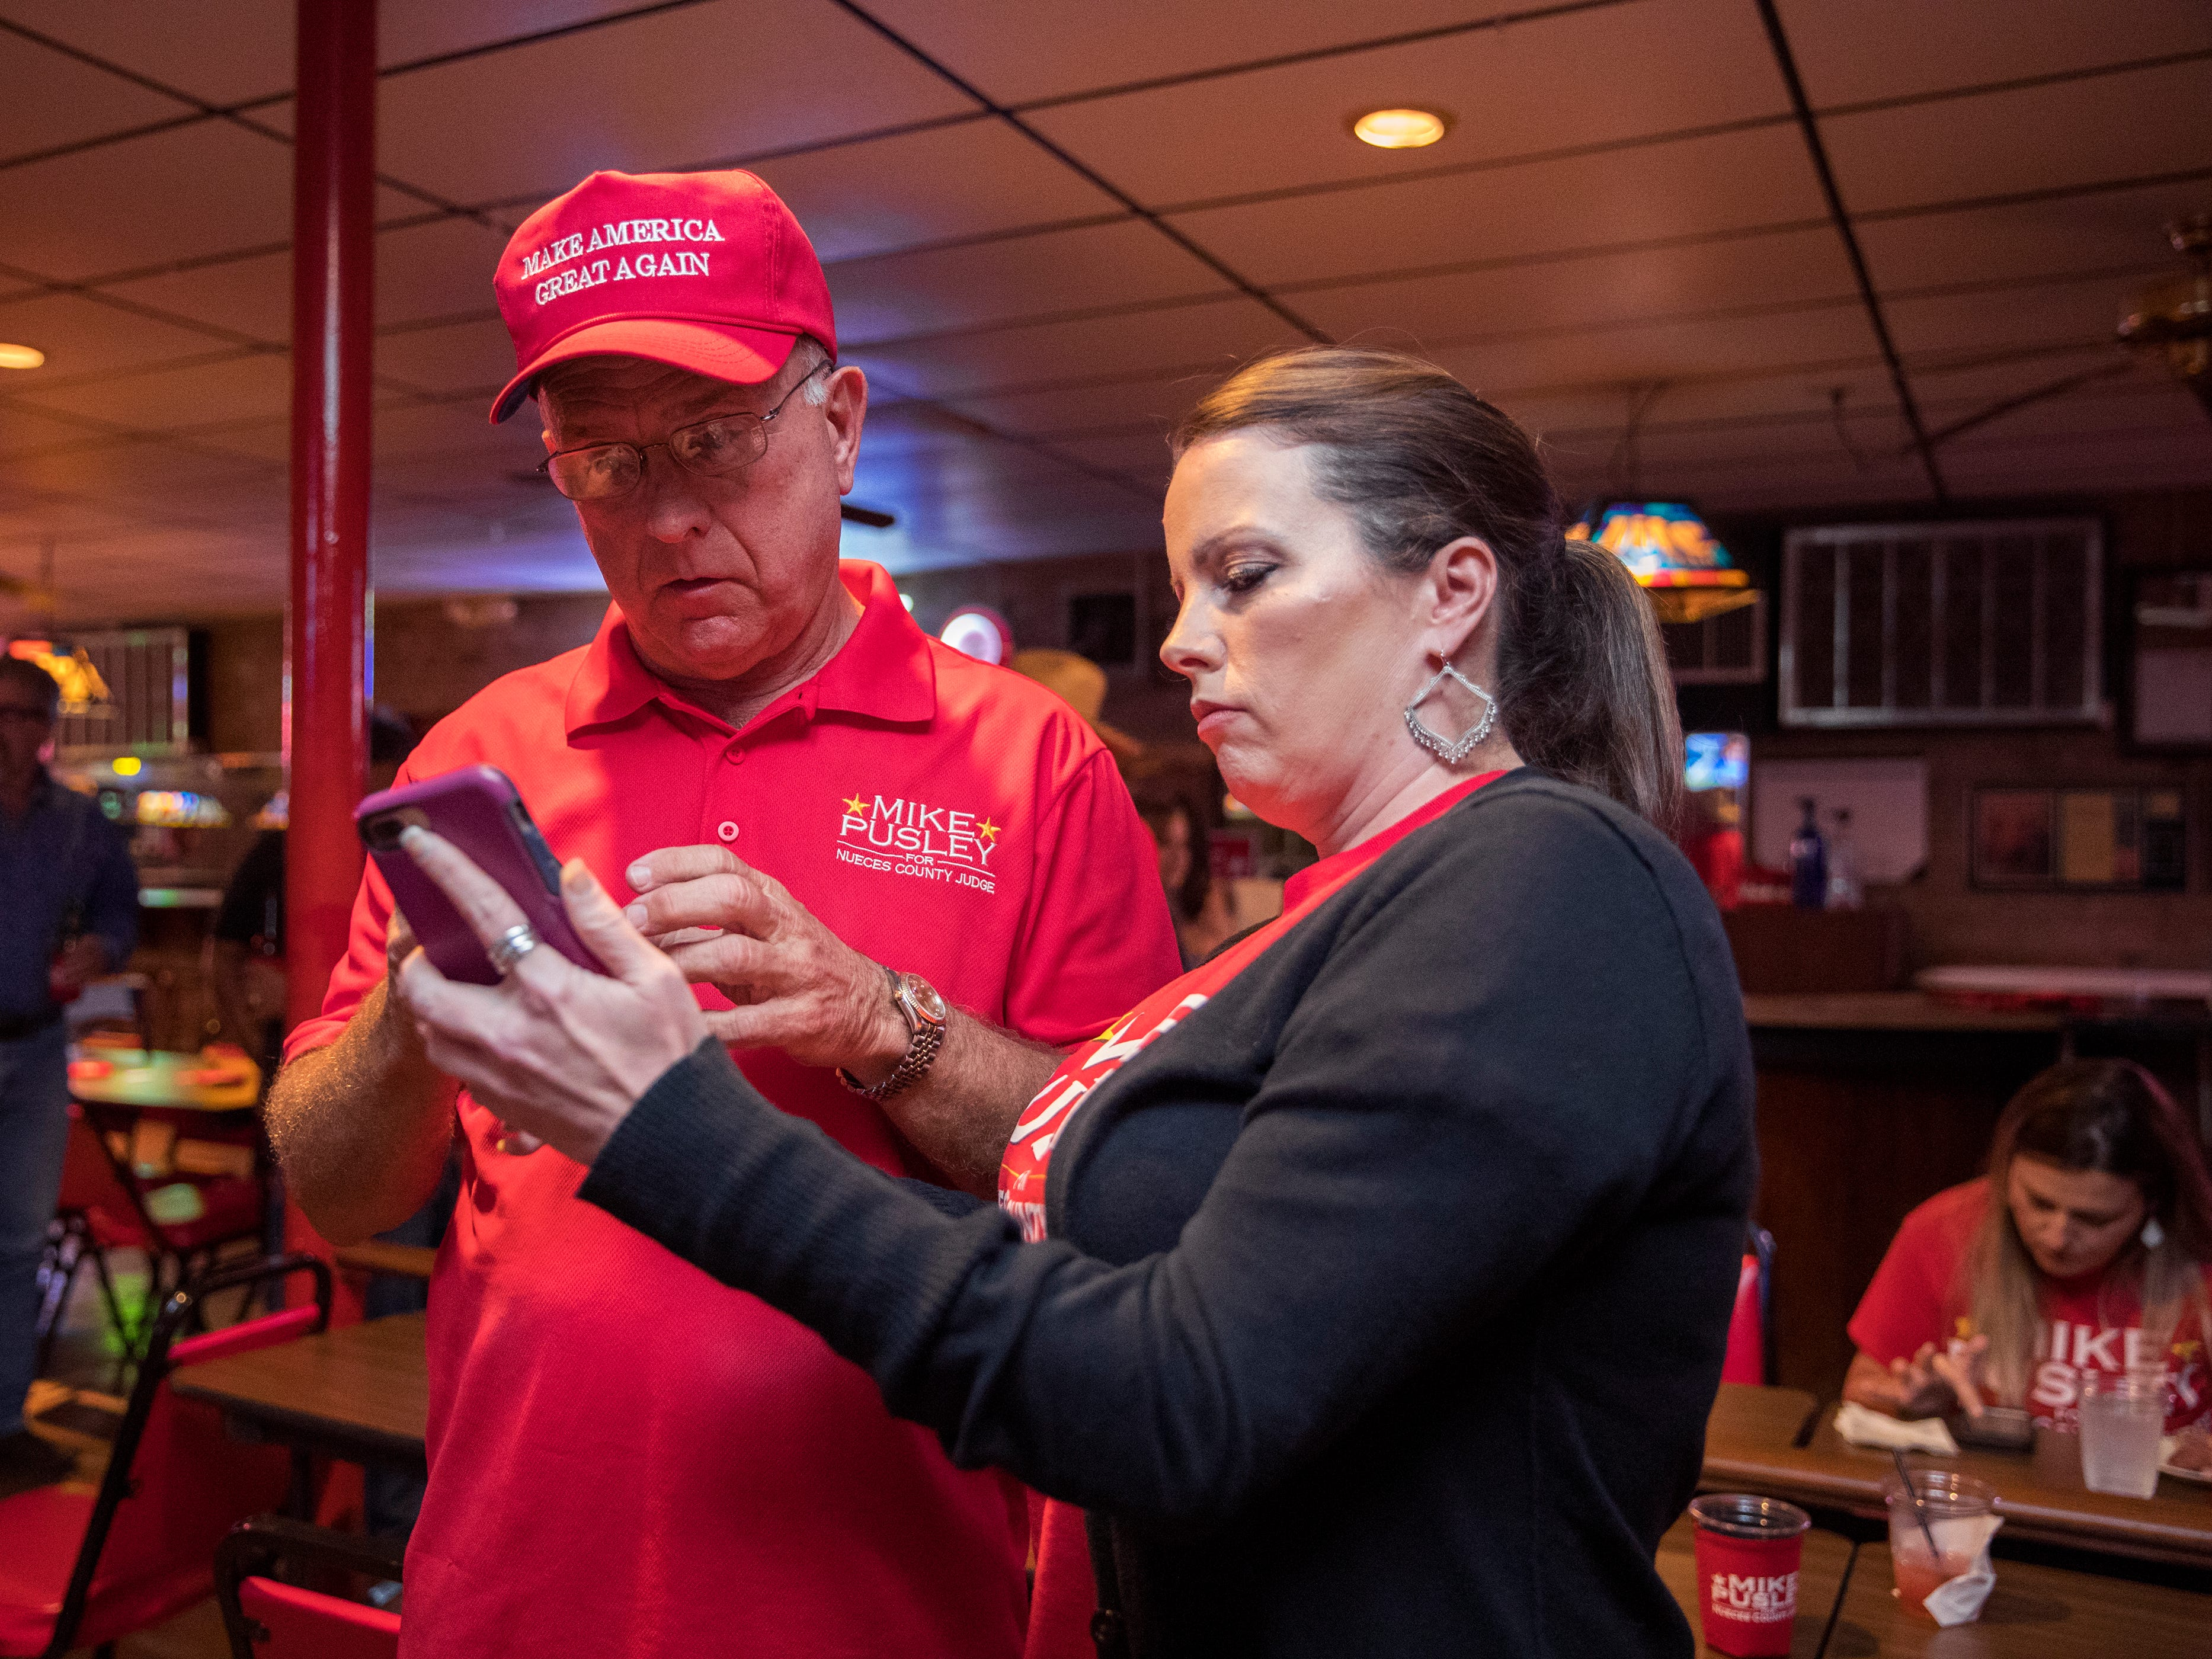 Republican candidate for Nueces County Judge Mike Pusley (left) looks at early voting numbers with his daughter Candi Pusley during his watch party at the Bar-B-Q Man on Tuesday, November 6, 2018.